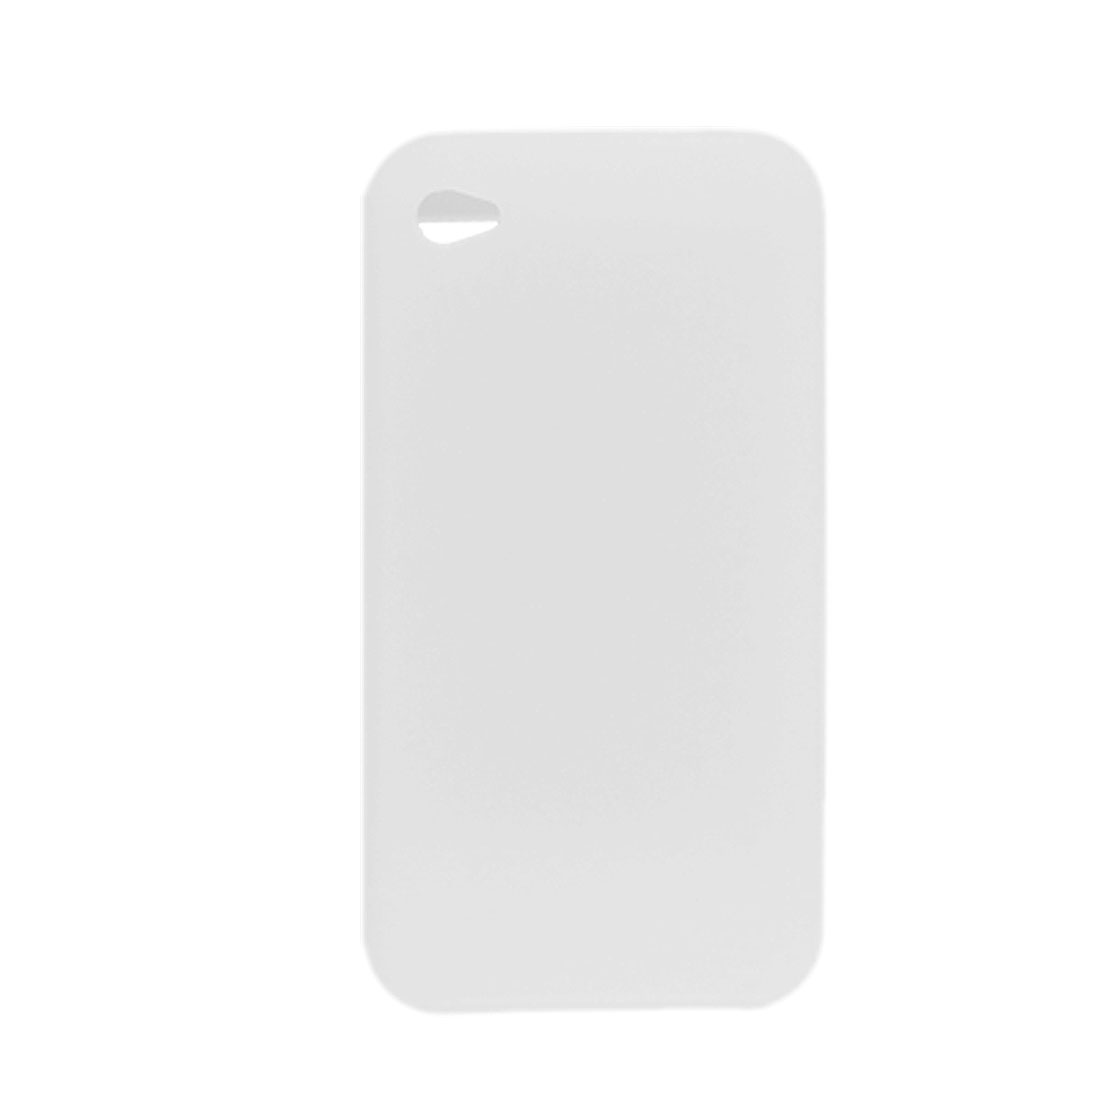 Clear White Soft Silicone Skin Case Shell Cover for Apple iPhone 4 4G